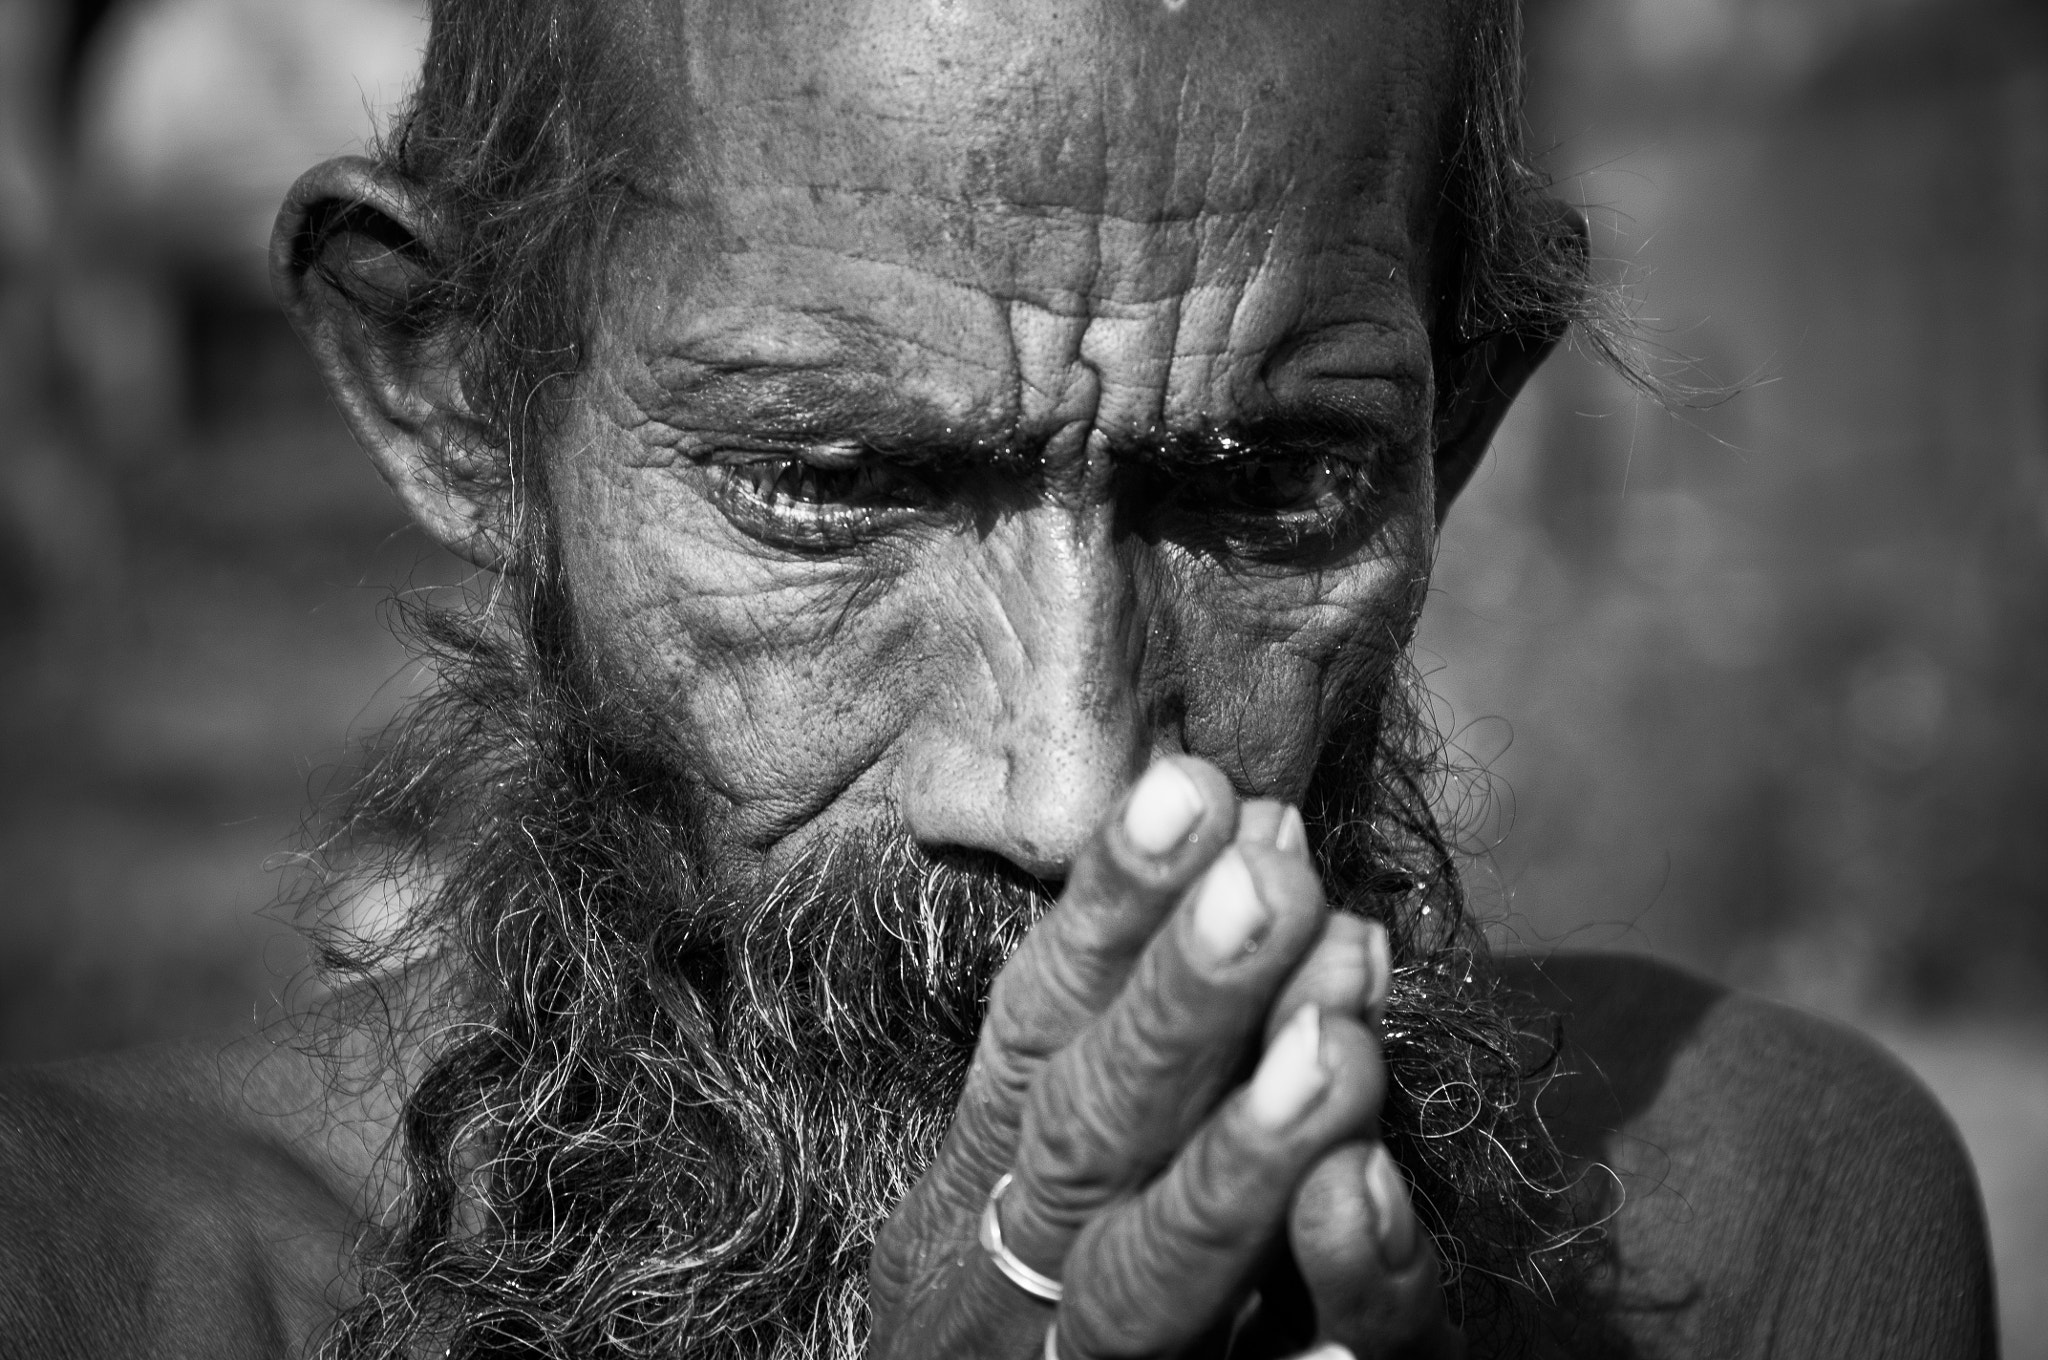 Photograph sadhu by Milan Schirlo on 500px